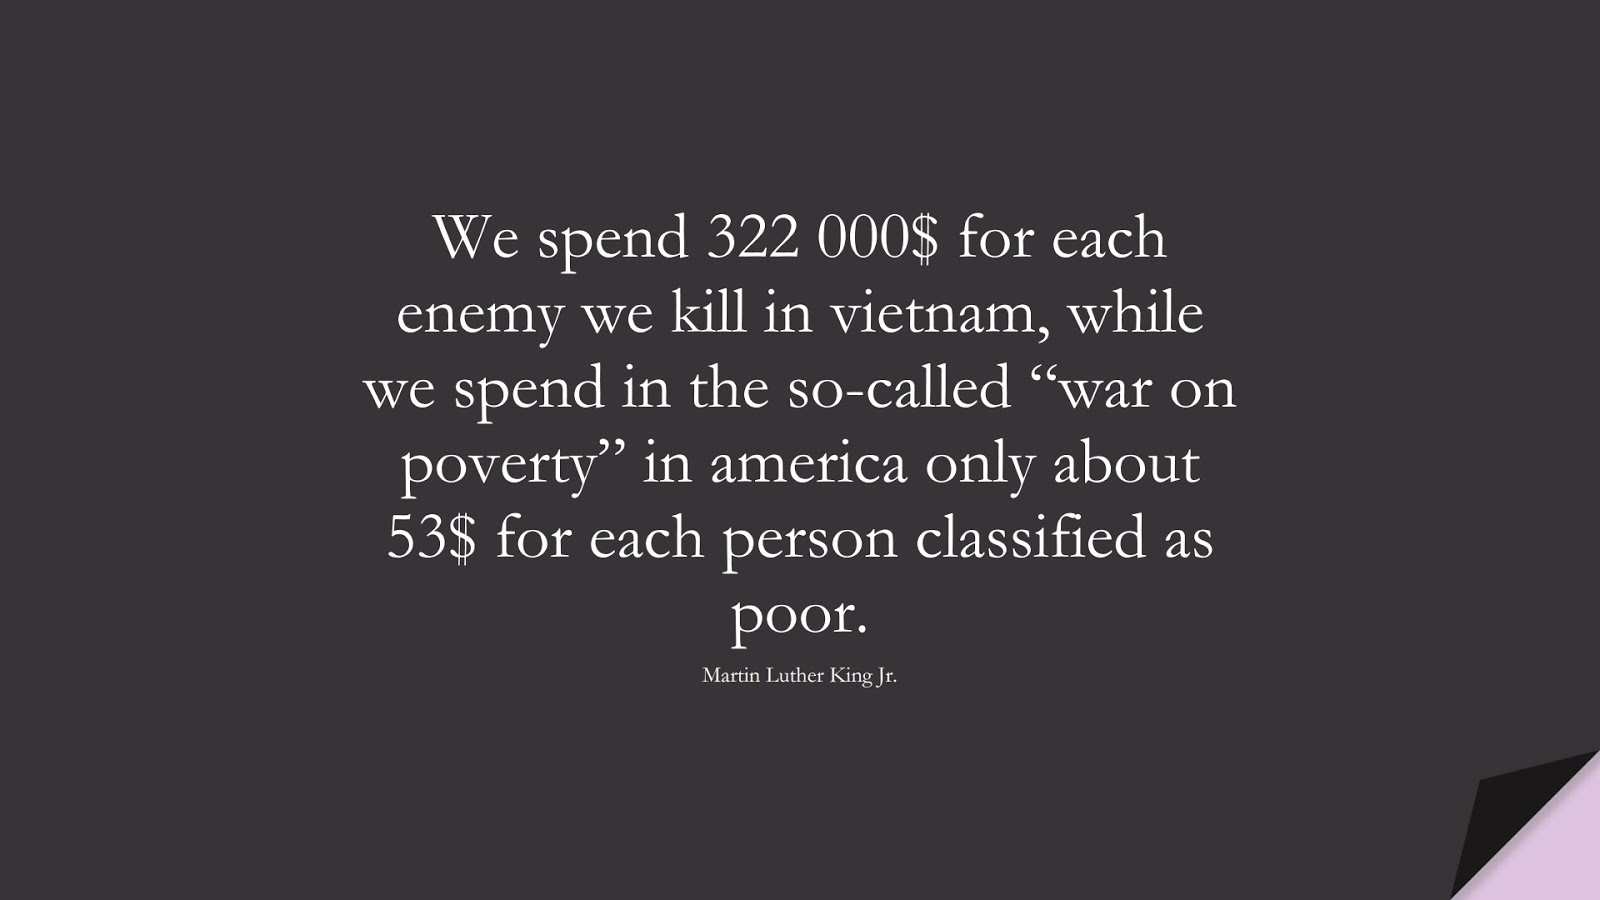 """We spend 322 000$ for each enemy we kill in vietnam, while we spend in the so-called """"war on poverty"""" in america only about 53$ for each person classified as poor. (Martin Luther King Jr.);  #MartinLutherKingJrQuotes"""